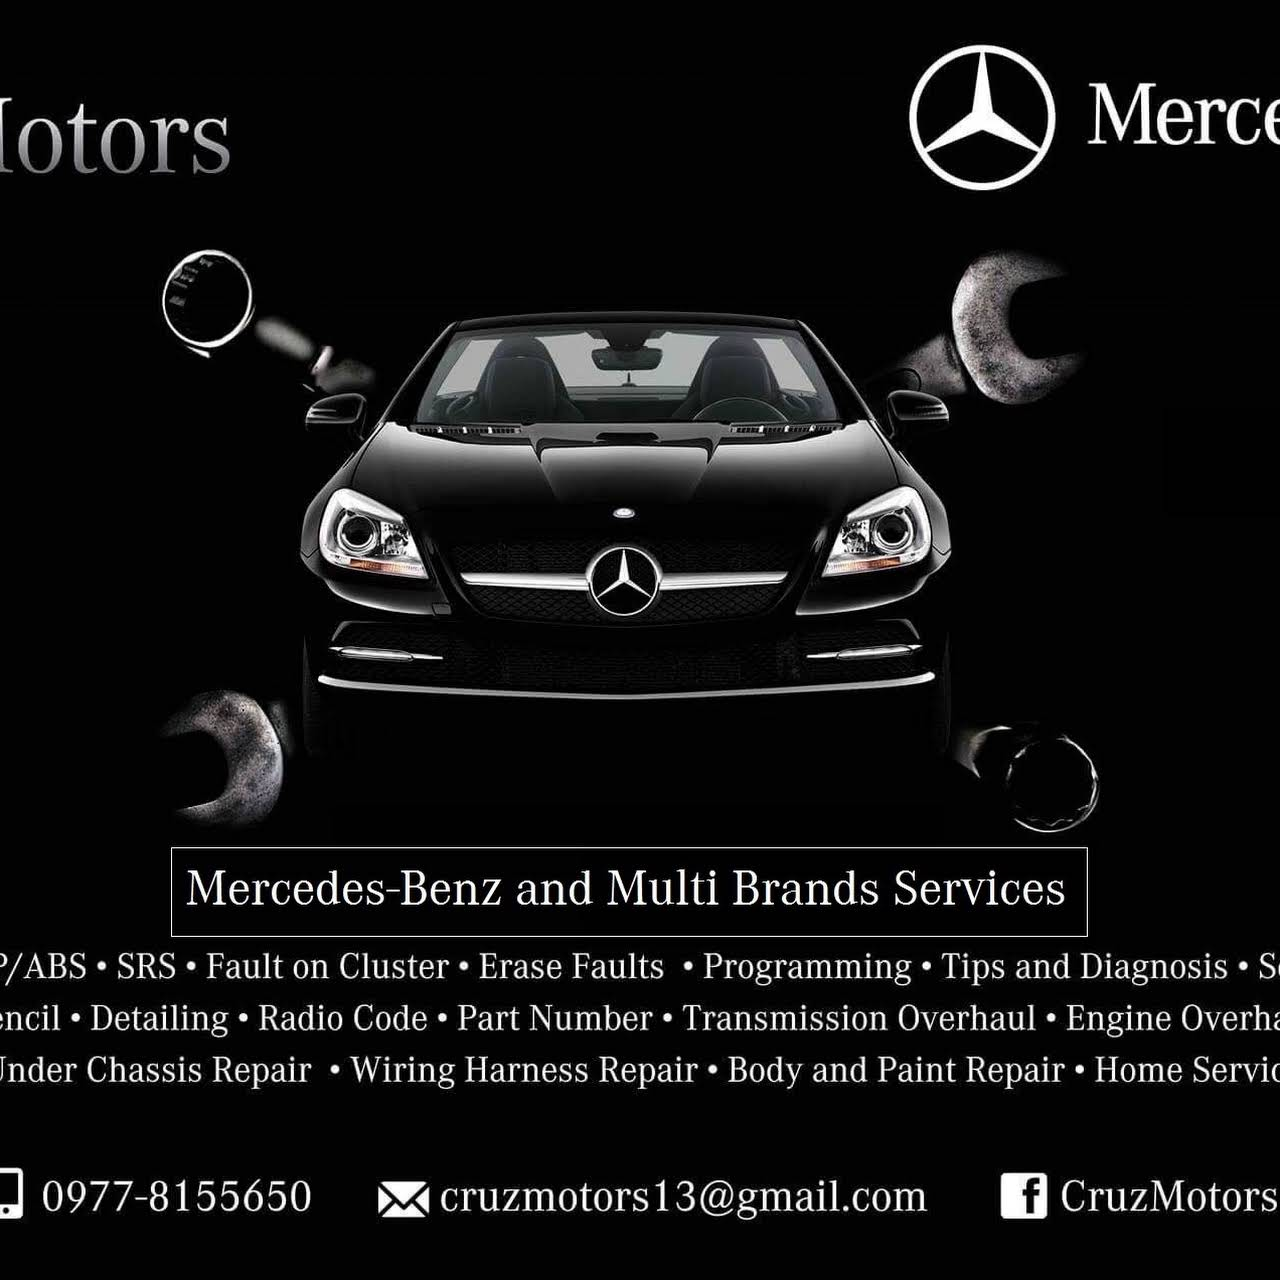 Cruzmotors Phils Corporation Multi Brands And Mercedes Benz Repair Car Wiring Harness Posted On Aug 18 2018